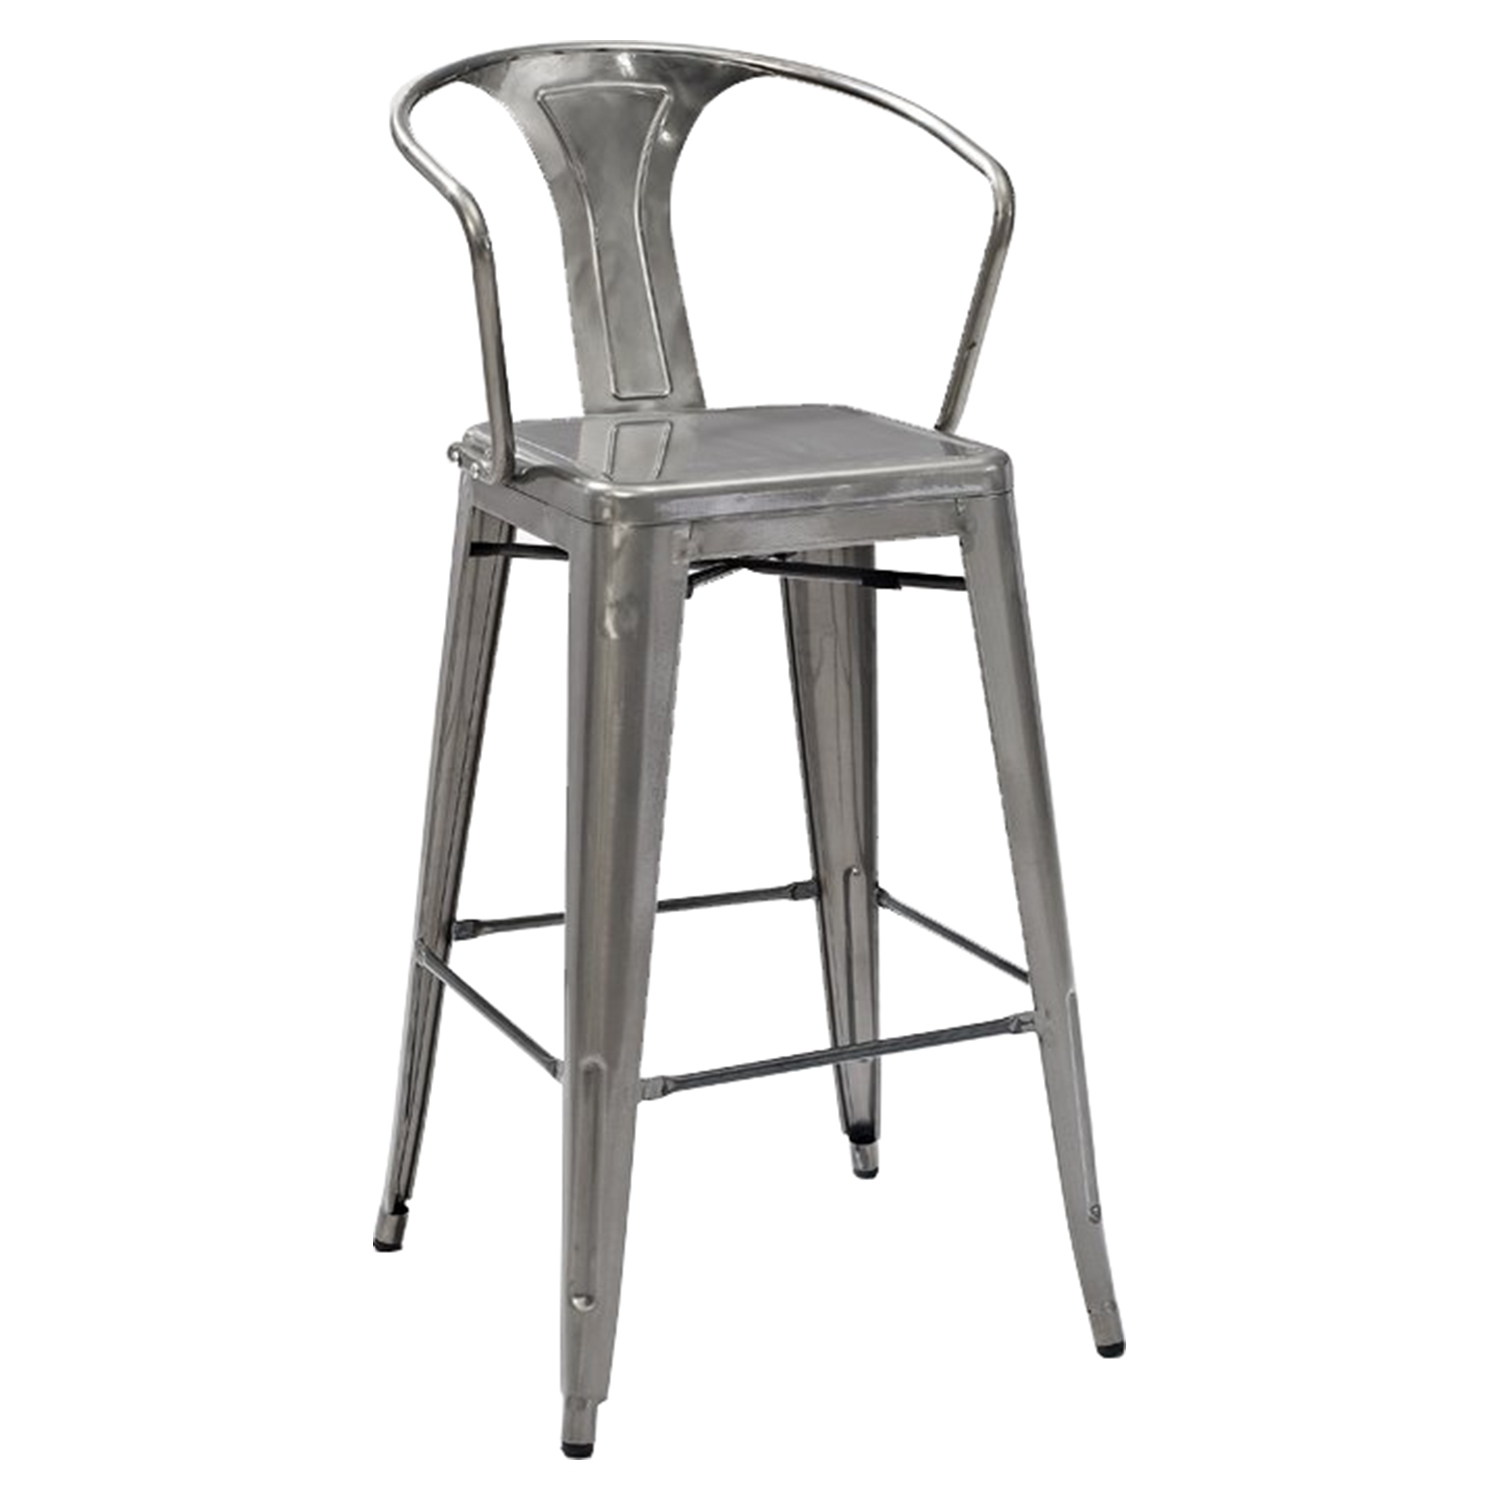 Amelia Metal Cafe Barstool - Galvanized (Set of 2) - CROS-CF500730-GA